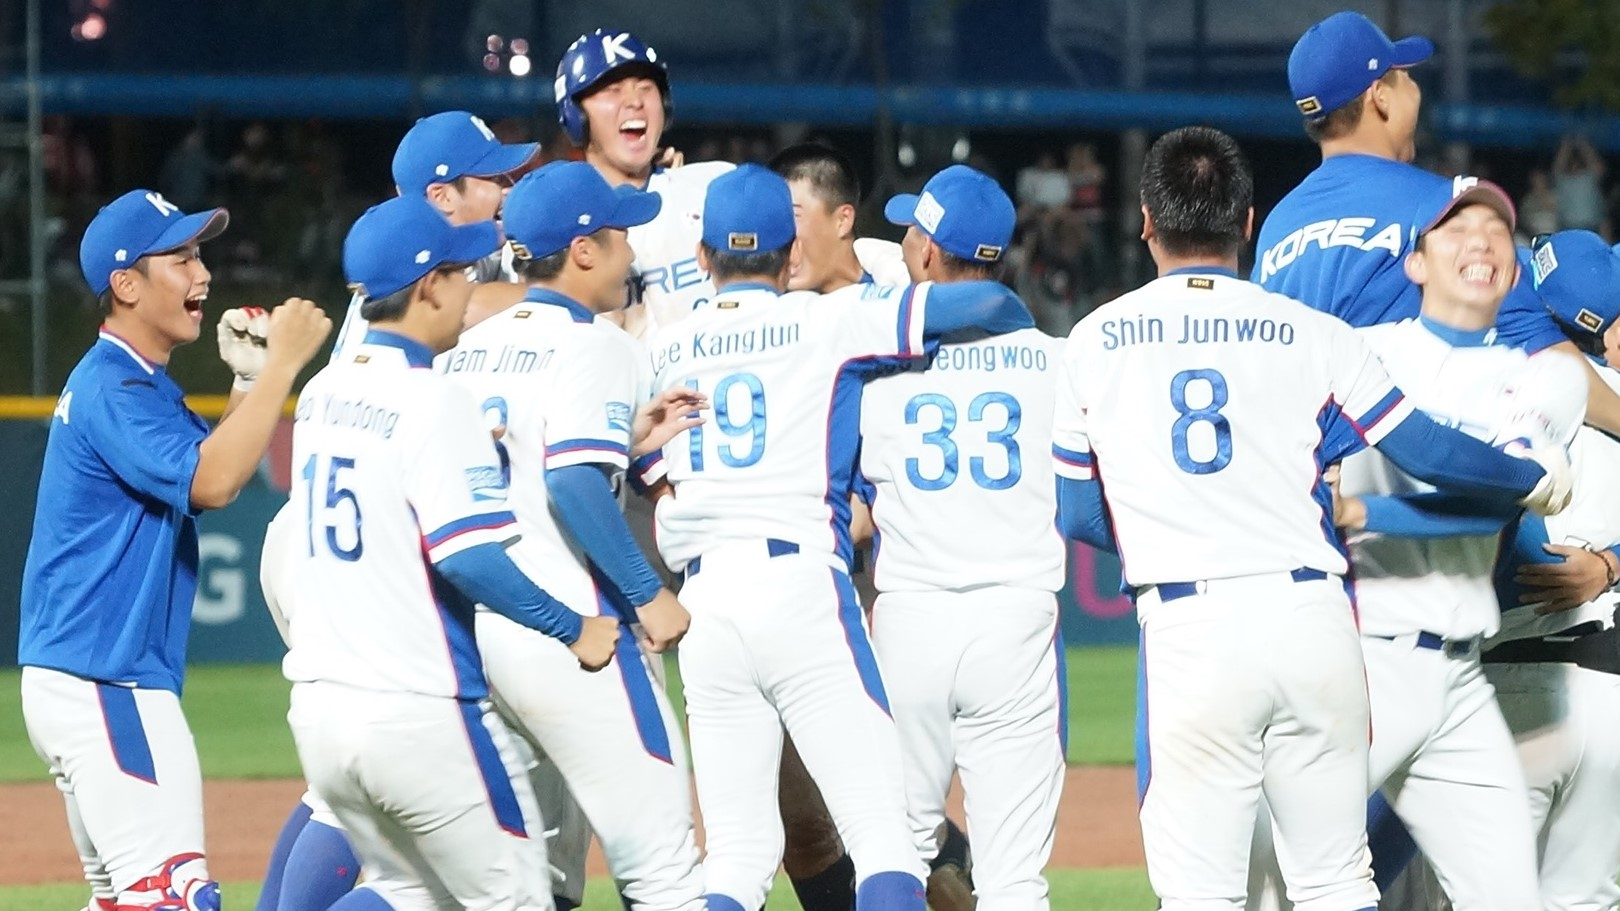 Korea had an emotional reaction after walking it off in the bottom of the tenth